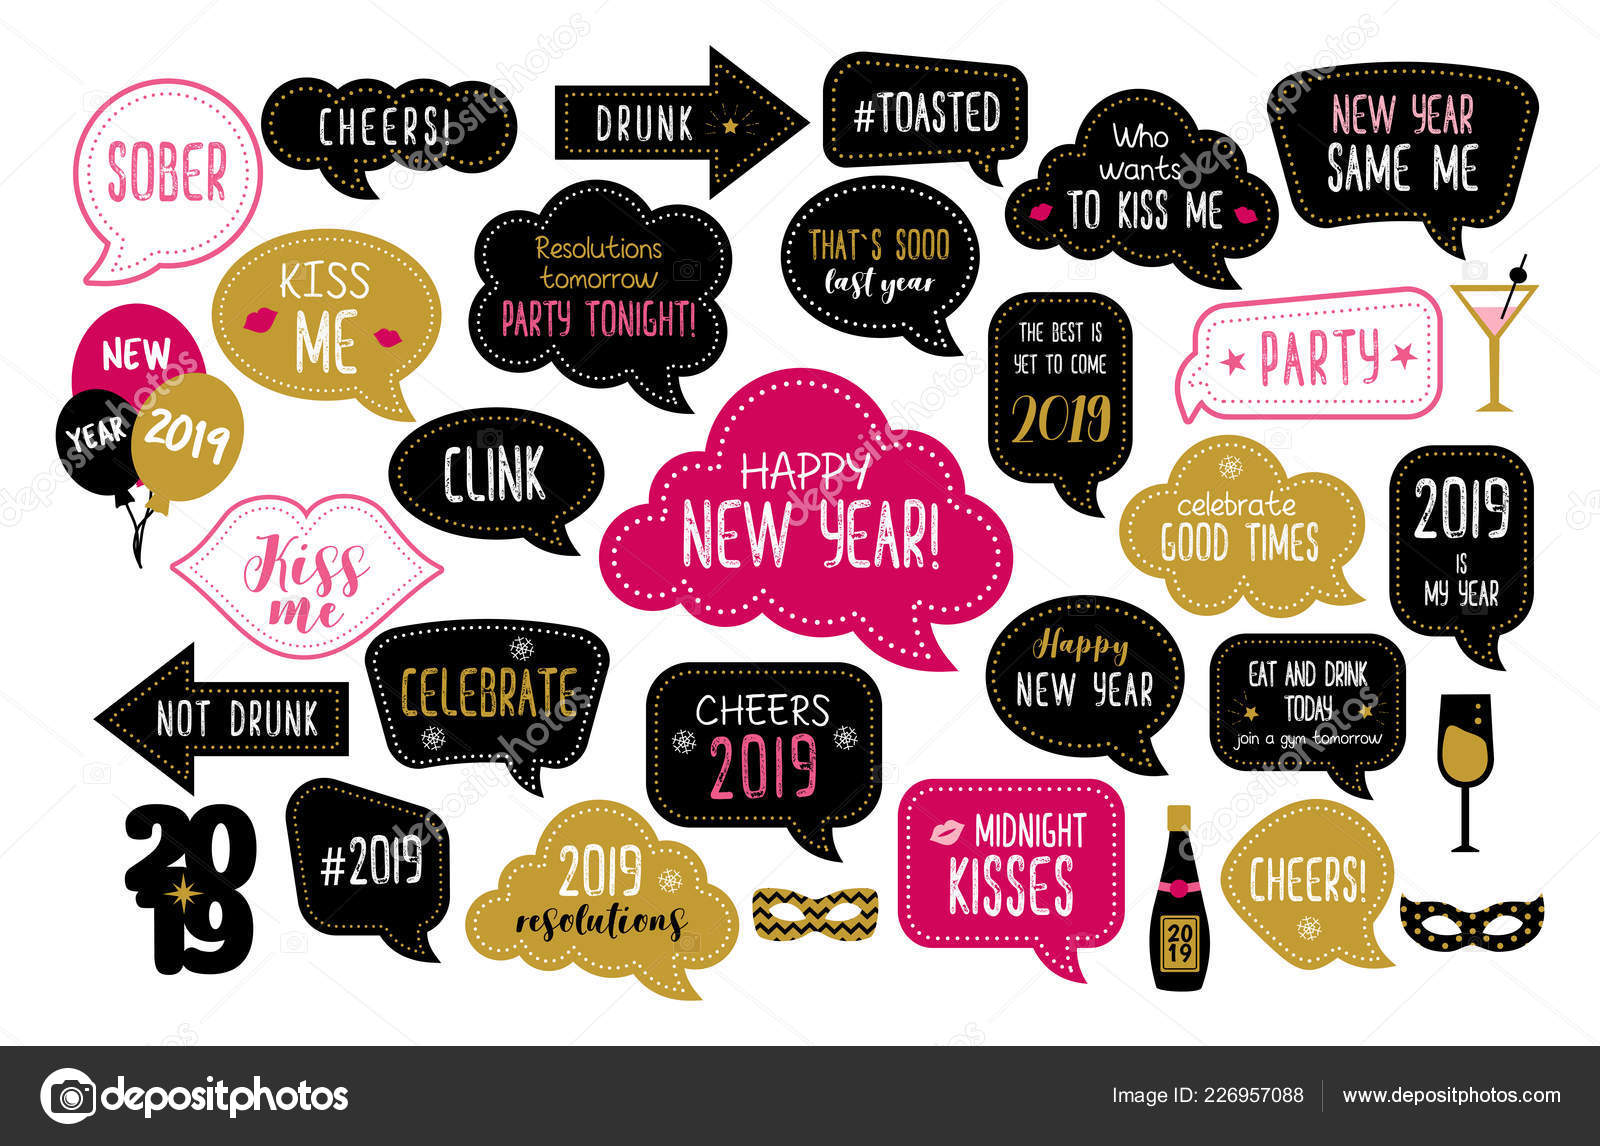 Happy New Year 2019 Photo Booth Props Stock Vector Dandelionfly